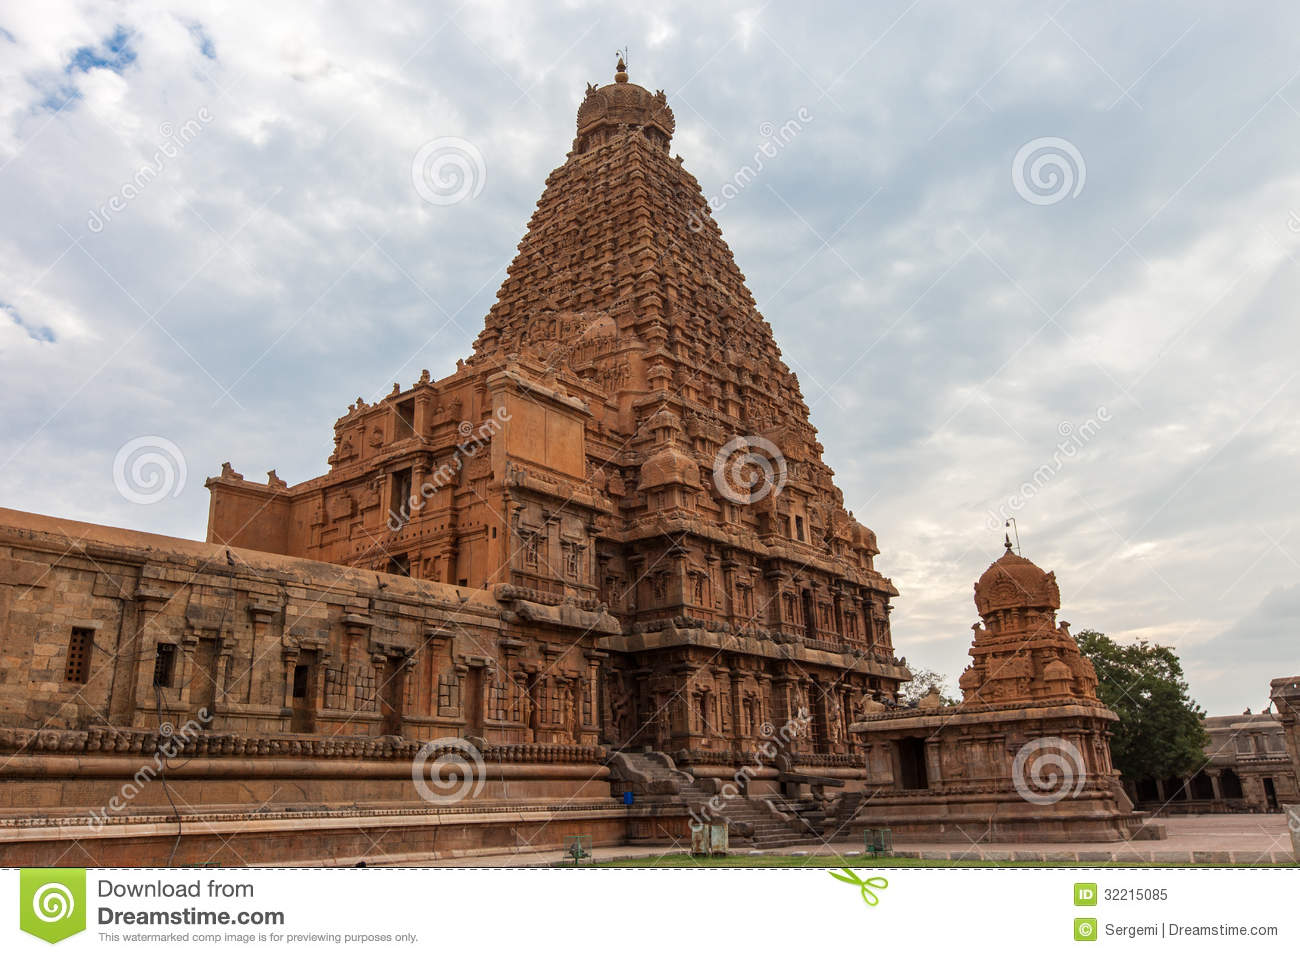 cattle farming business plan in tamil nadu temples